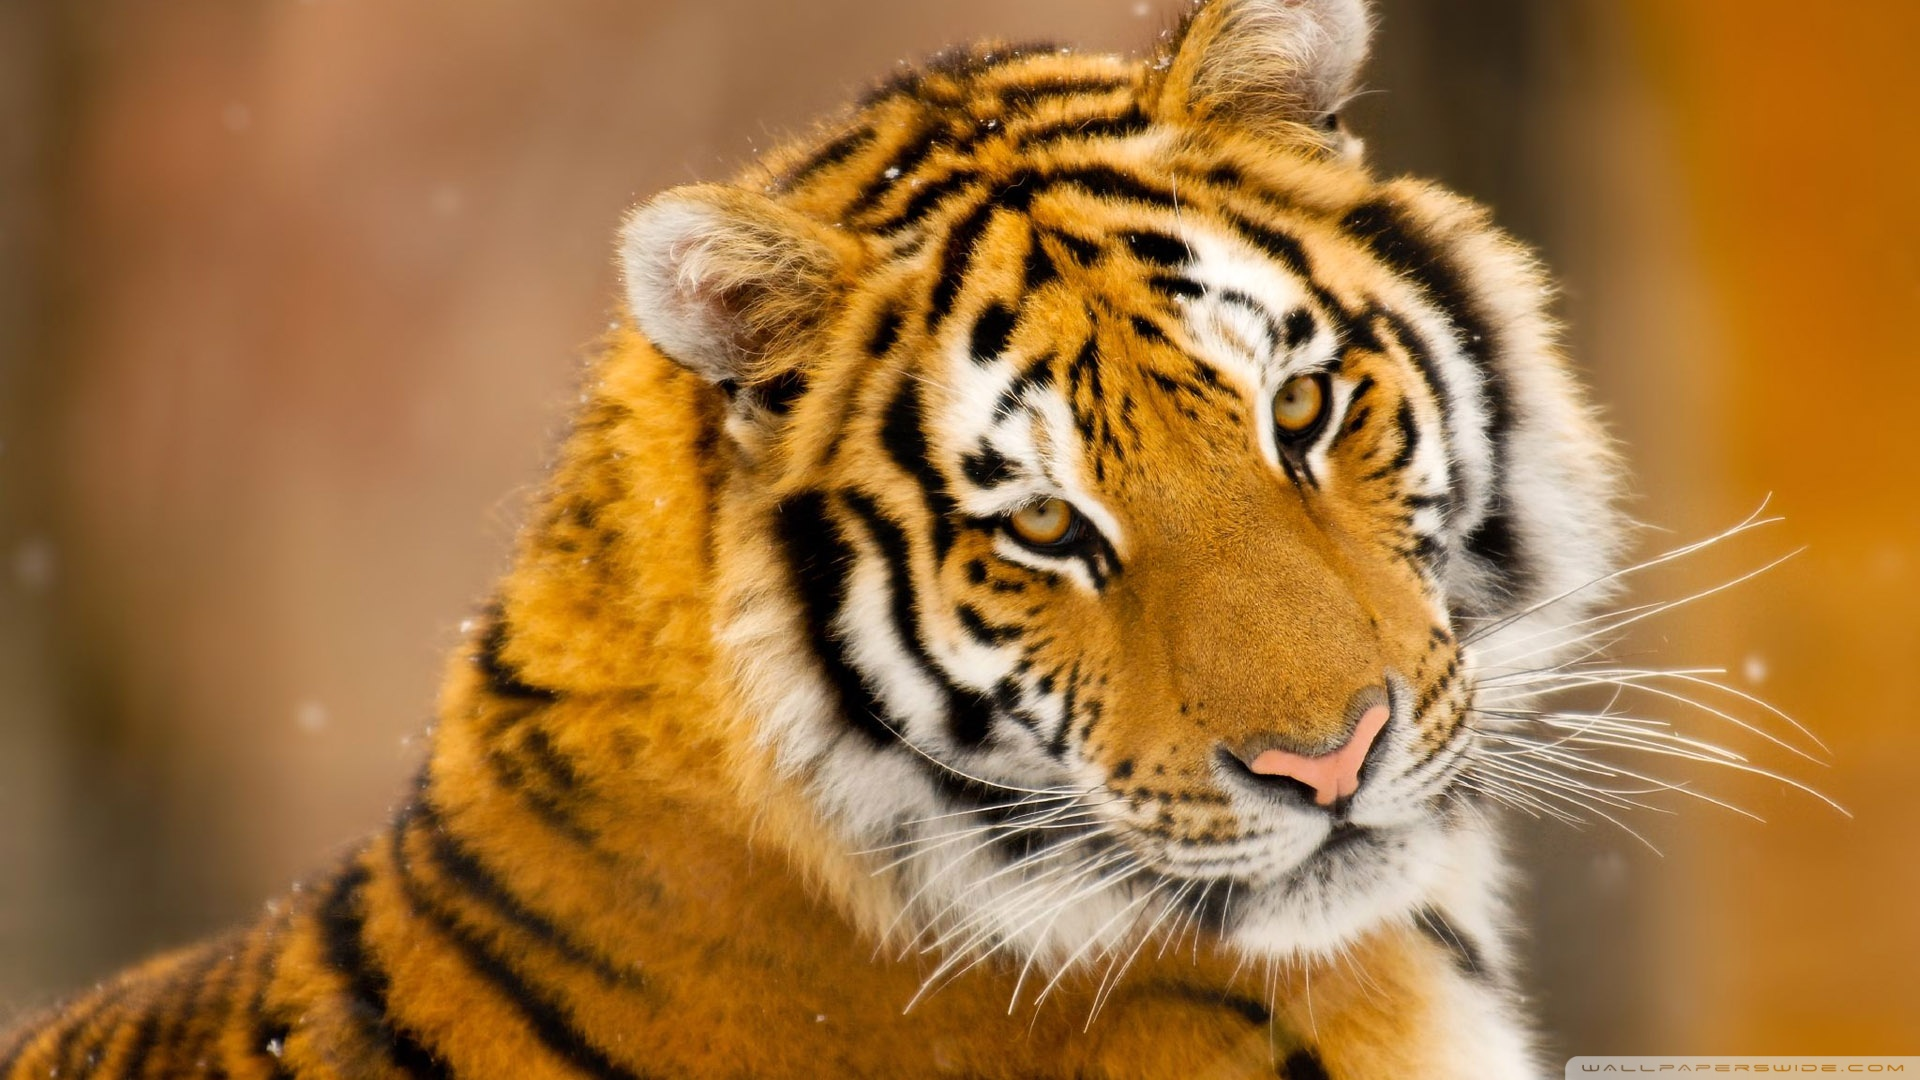 Siberian tiger wallpapers pictures images - All animals hd wallpapers ...